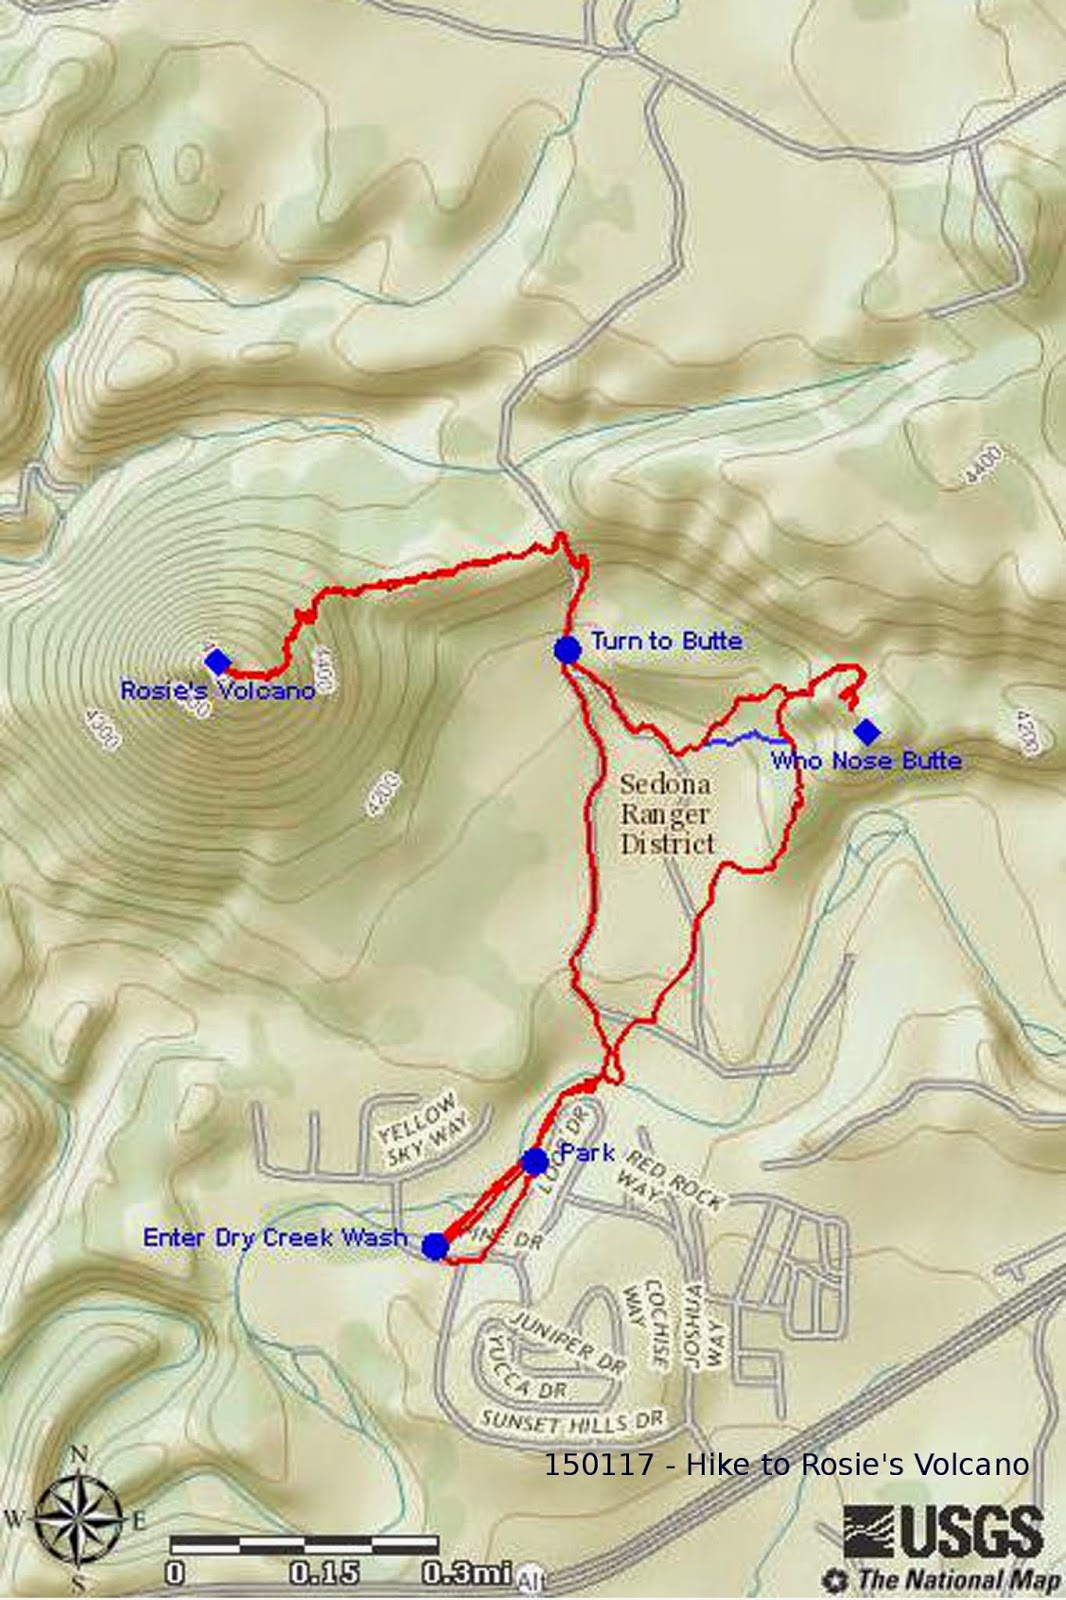 this hike was 4 0 miles total the highest elevation was 4654 feet and the total ascent was 1126 feet